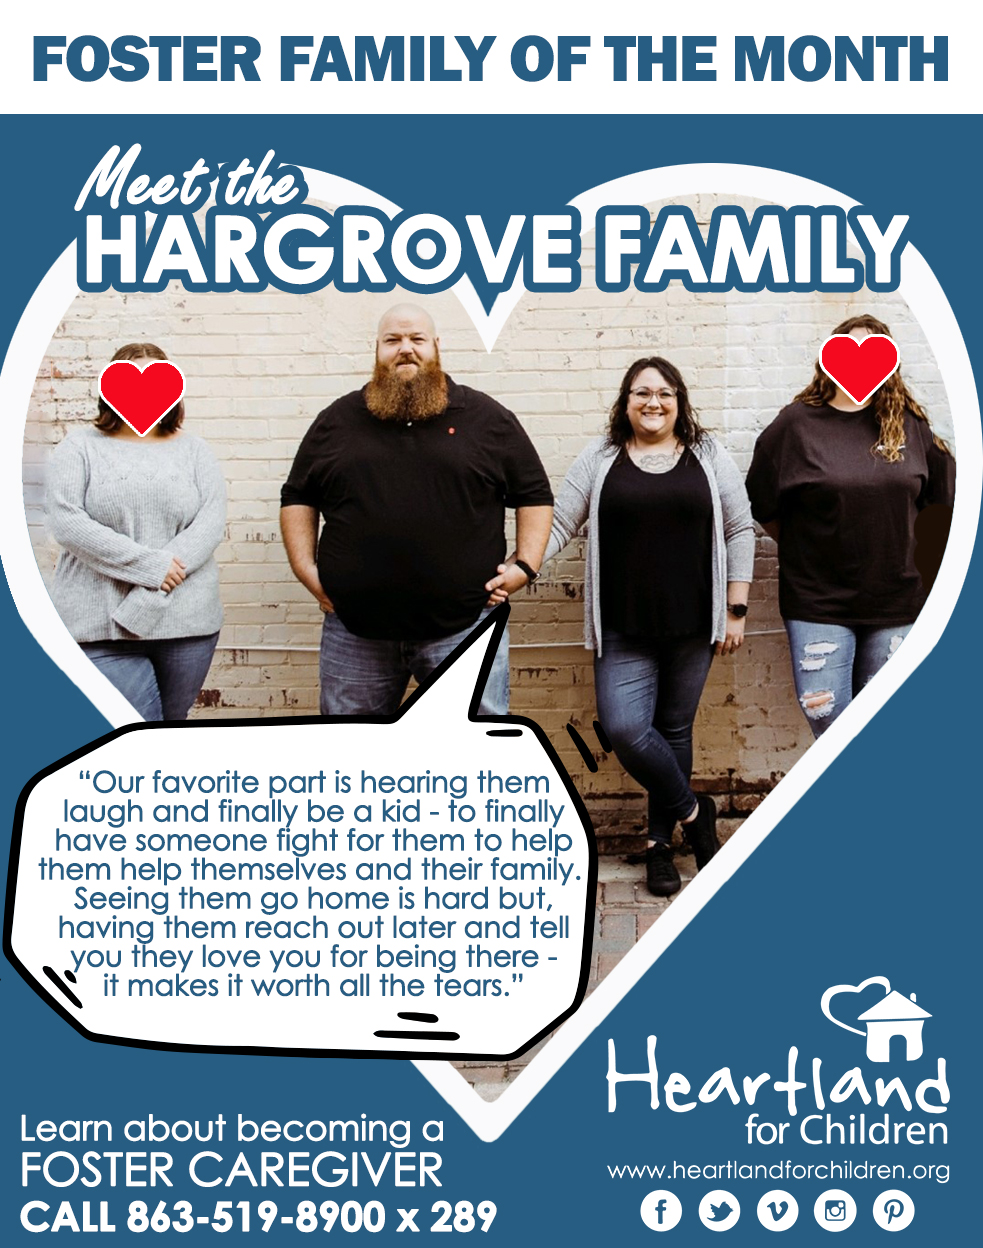 Foster Family of the Month: Hargrove